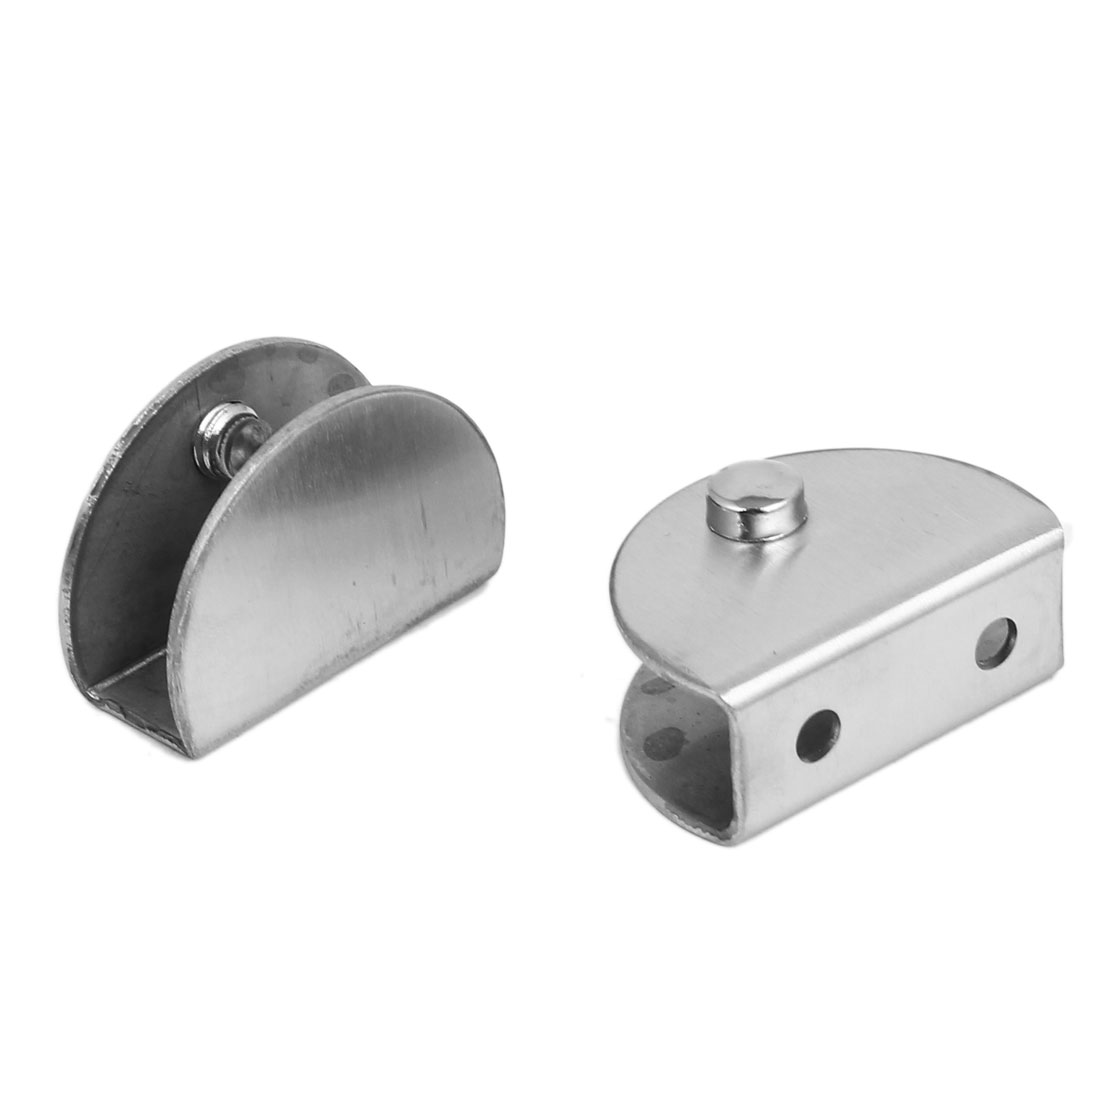 2pcs Silver Tone Metal Half Round Adjustable Screw Mounted Glass Clamp Clip Holder